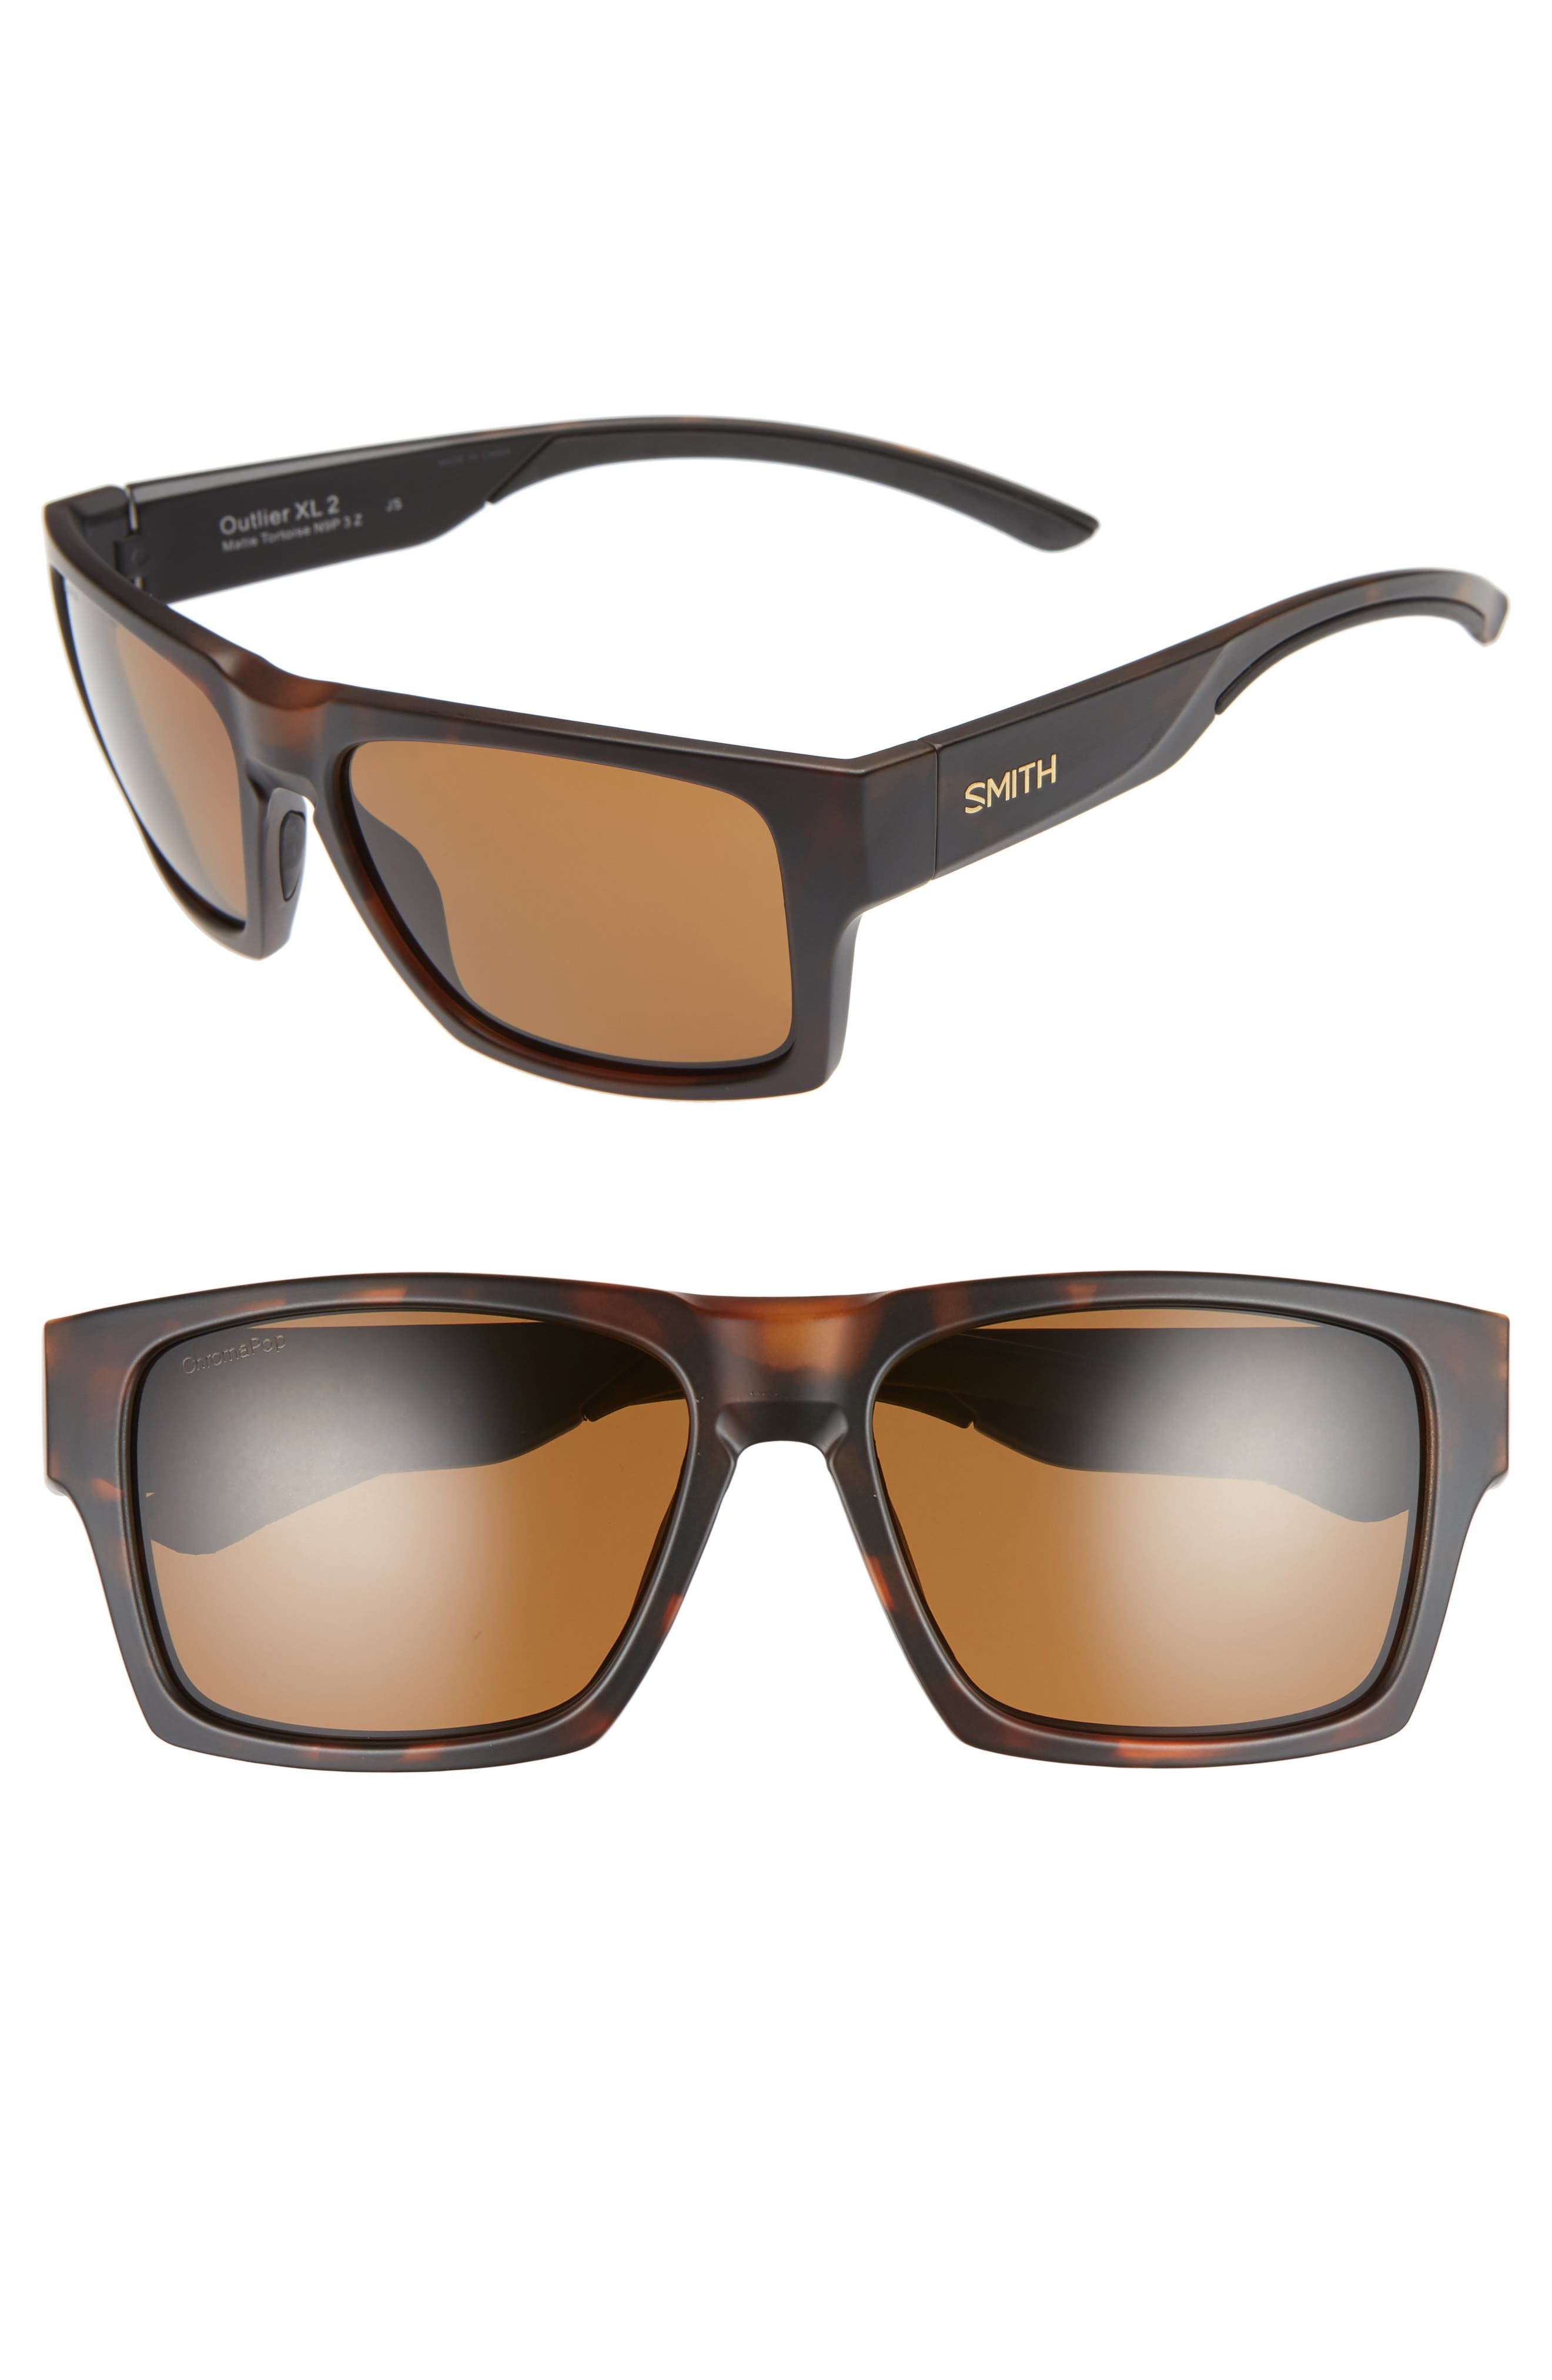 SMITH OUTLIER 2XL 59MM POLARIZED SUNGLASSES - MATTE TORTOISE